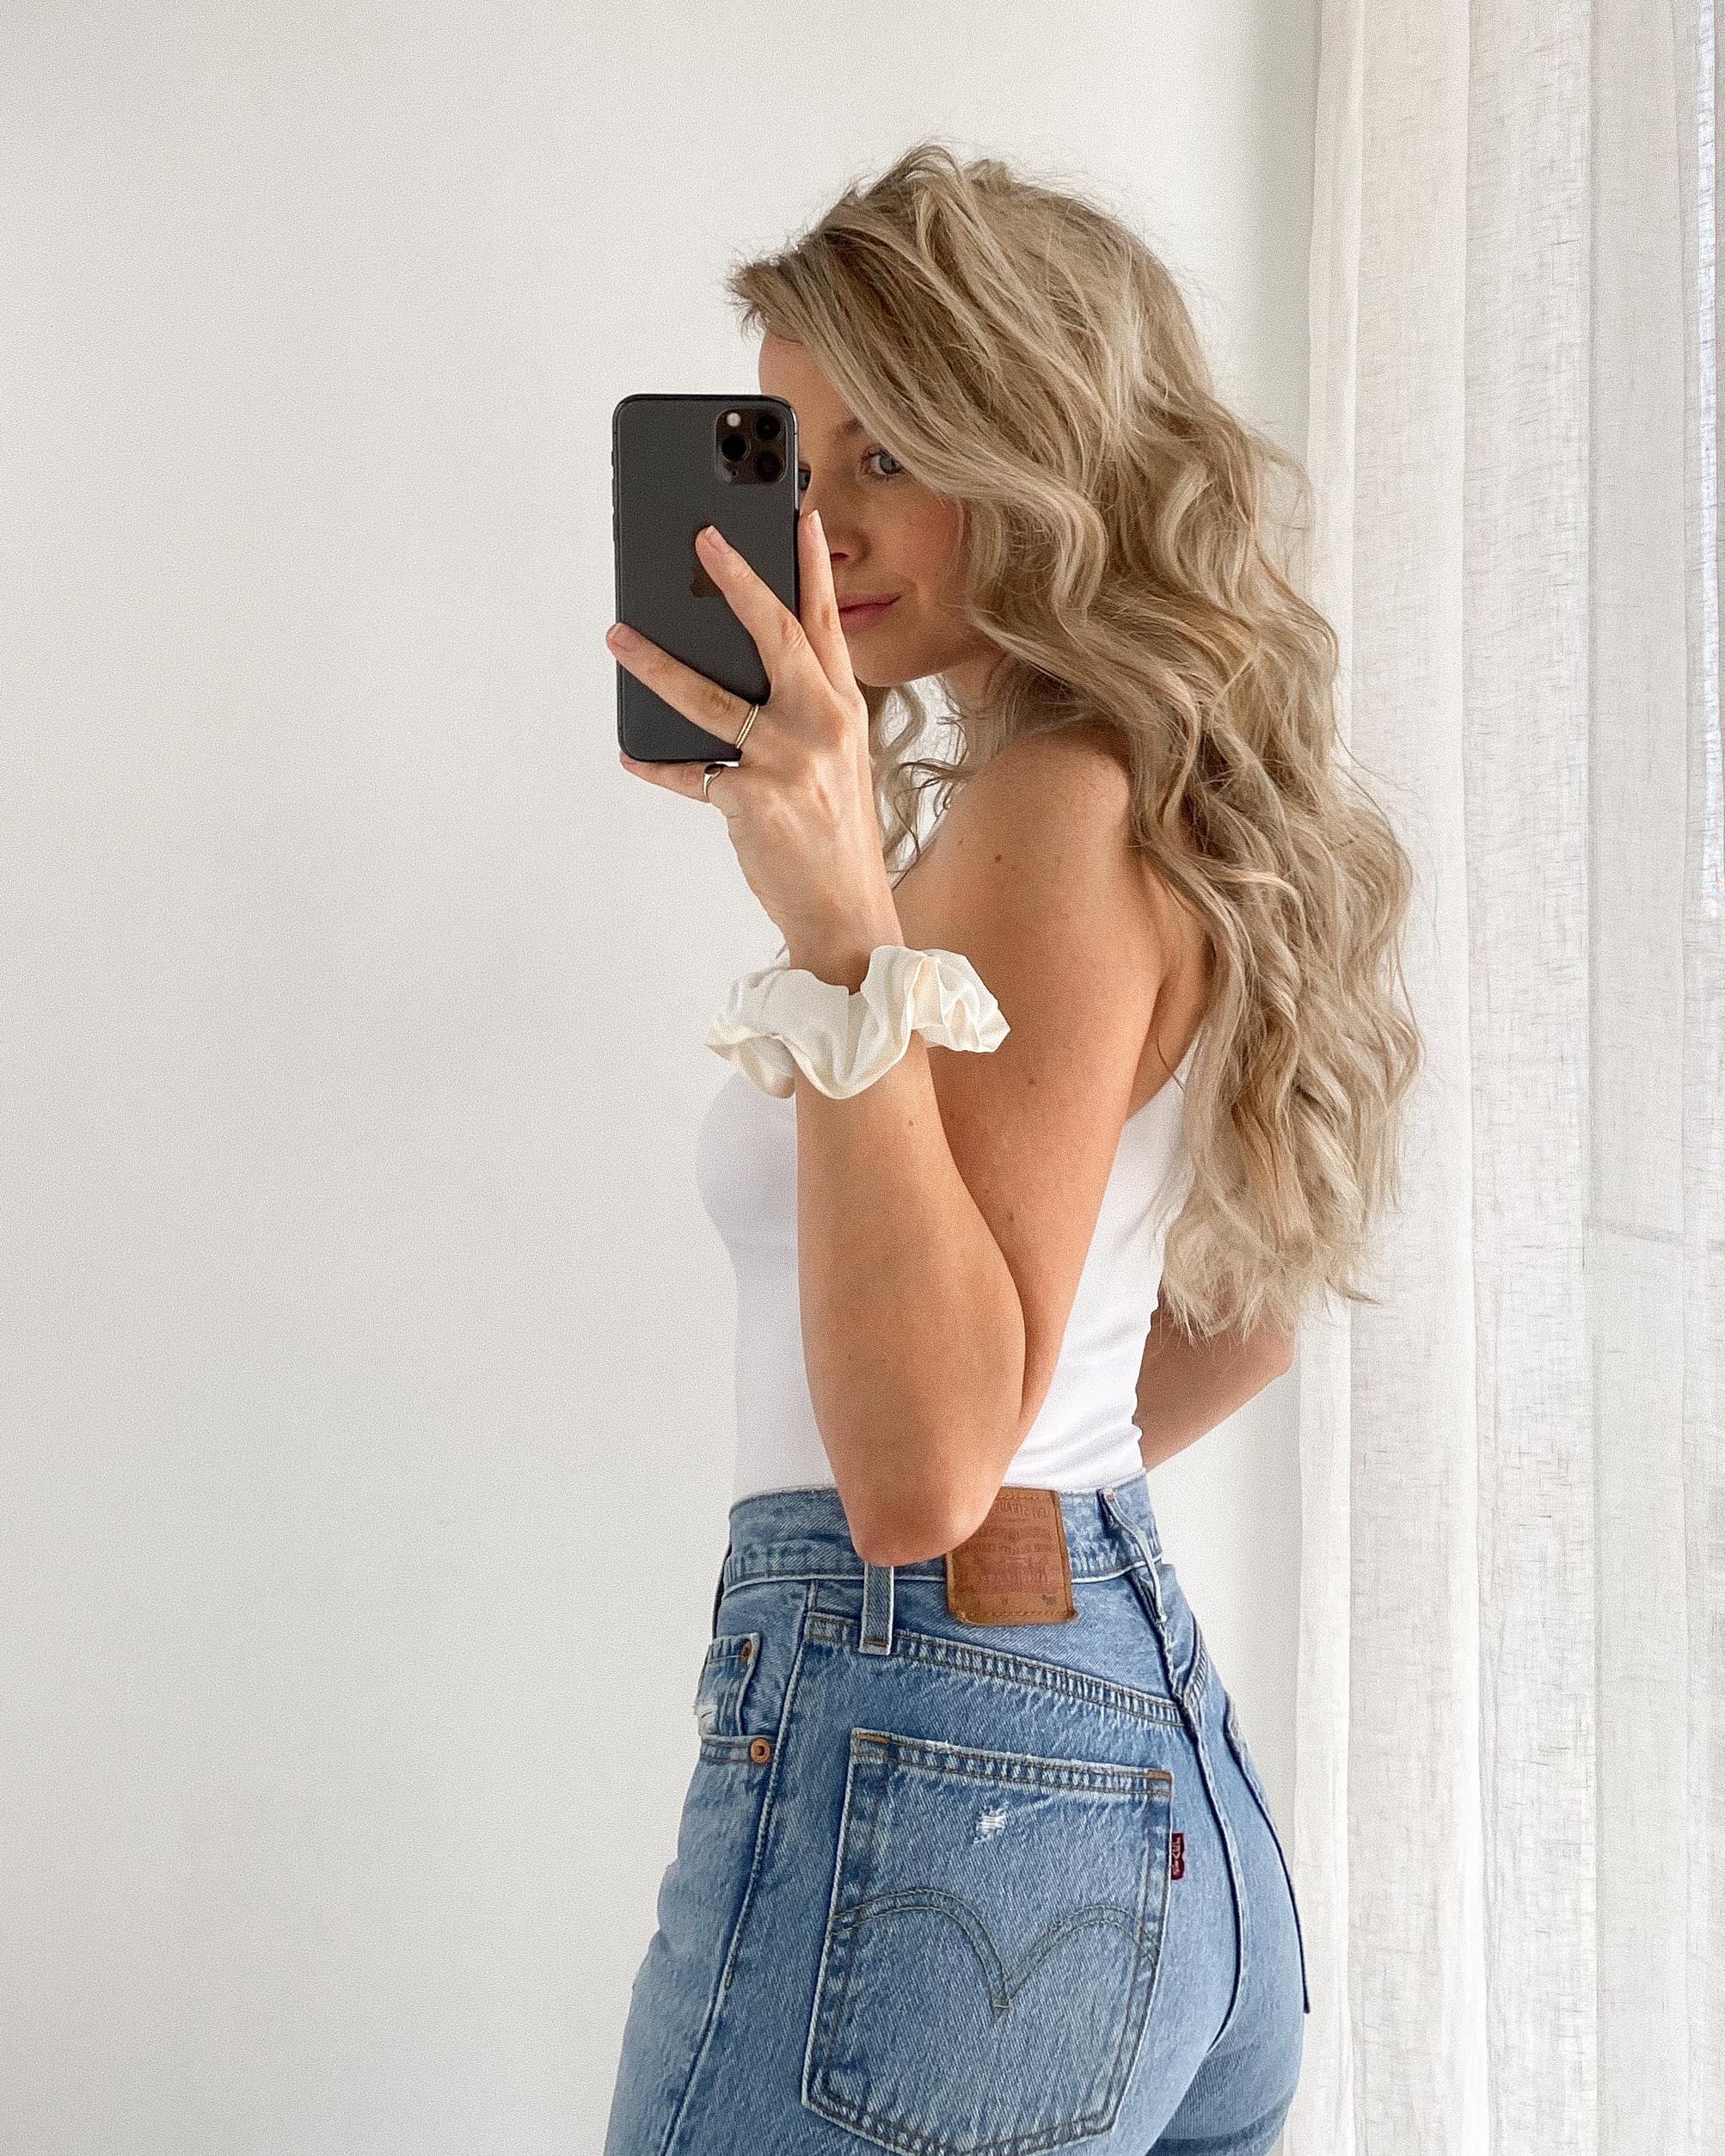 YOU MUST TRY THESE OVERNIGHT CURLS, BEST EVER - ROBE TIE CURLS | www.alexgaboury.com